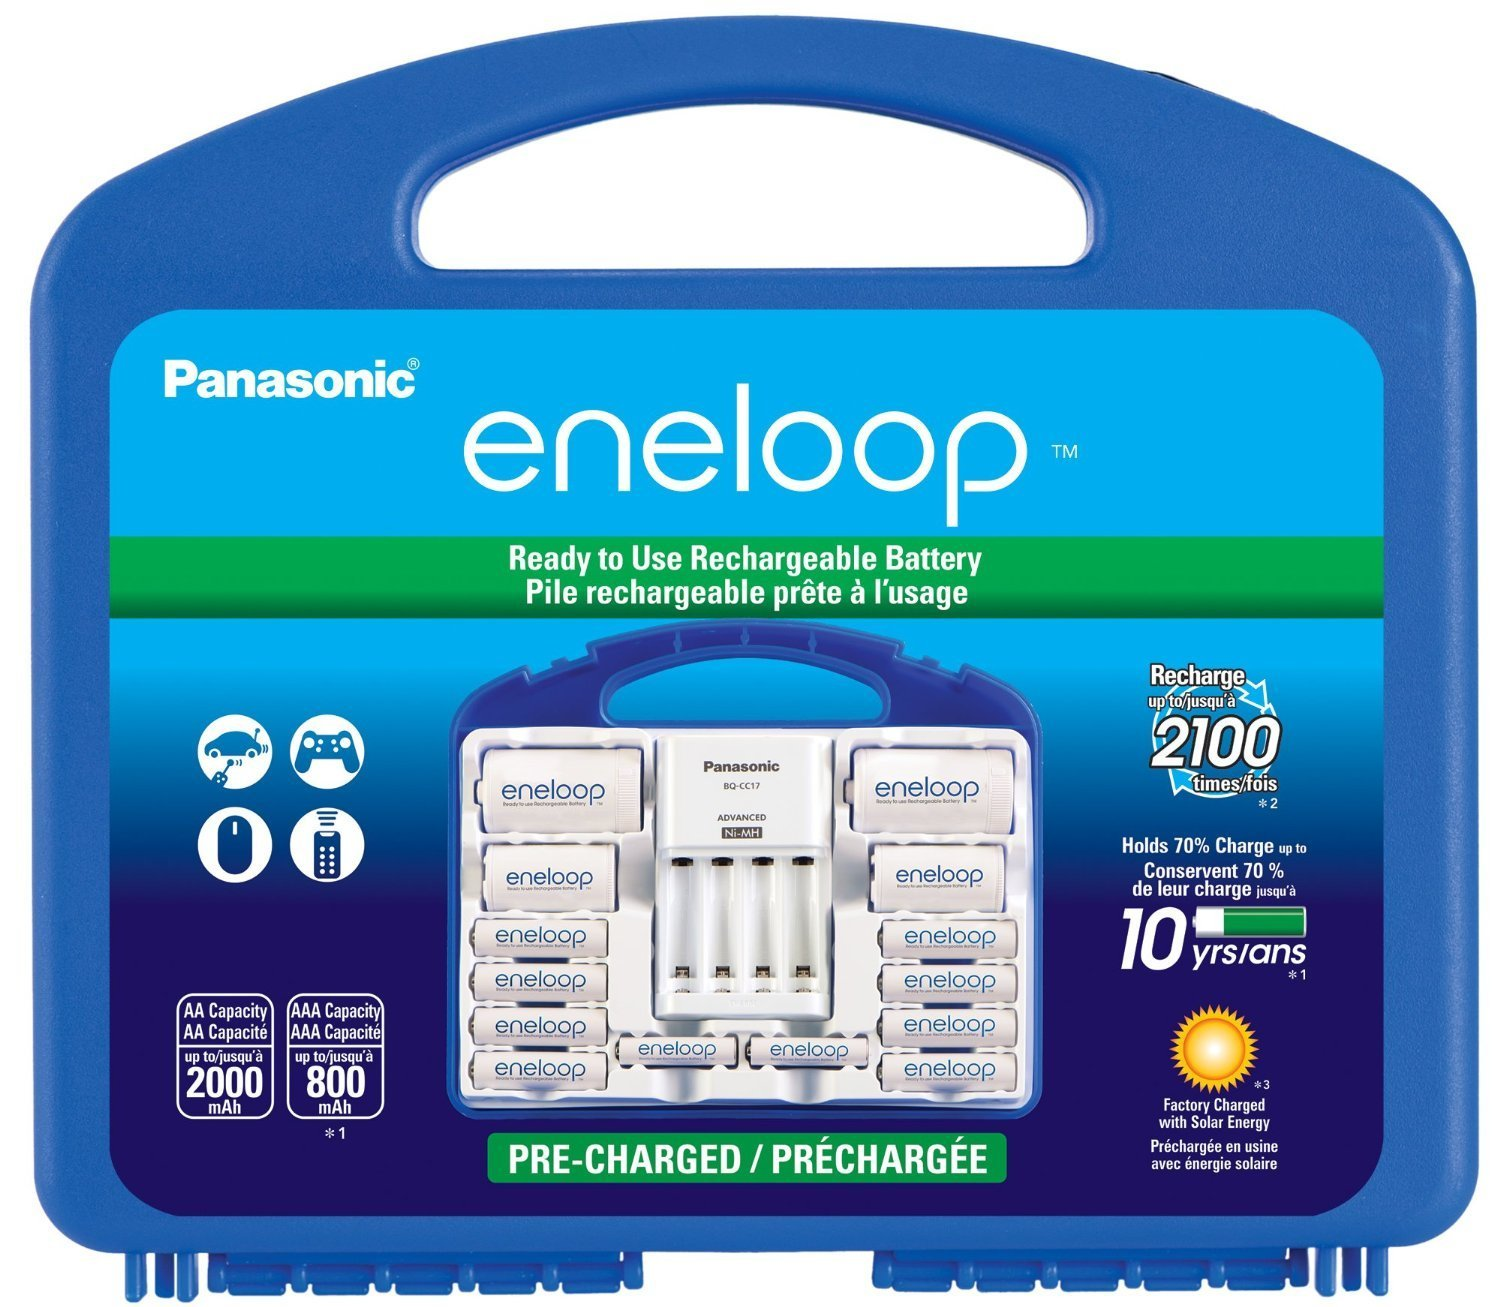 """Panasonic Eneloop Power Pack 2100 cycle w/ 8x AA + 2x AAA + 2x """"C"""" and 2x """"D"""" Spacers, 1x 4 Position Charger BQ-CC17, 1x Storage Case and 1x Keychain light"""